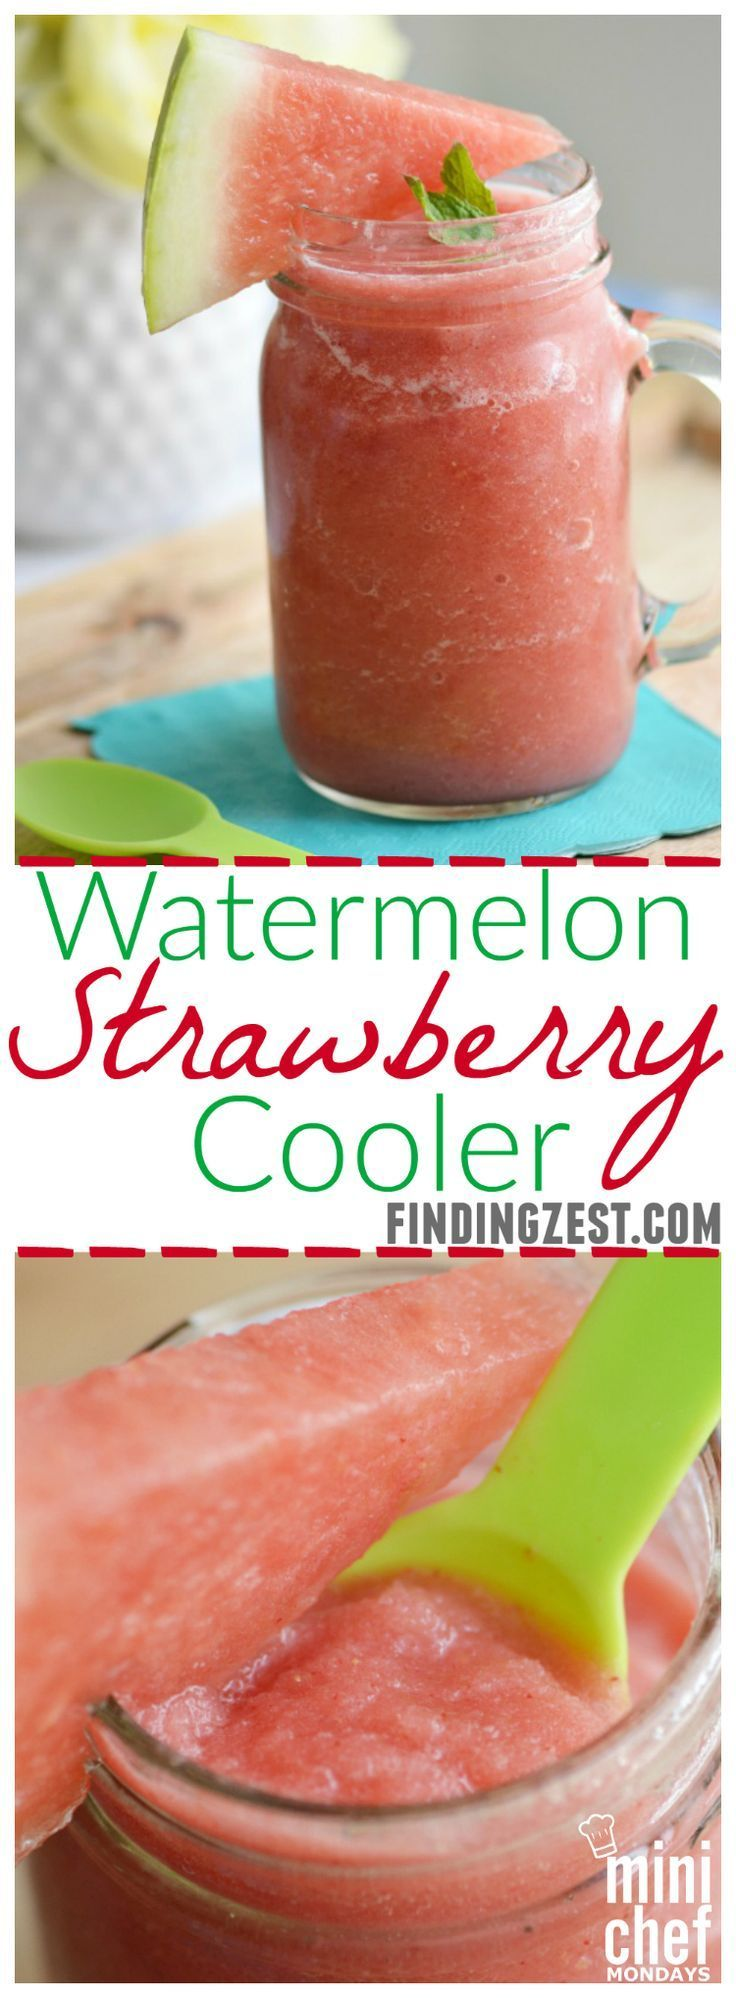 Watermelon Strawberry Cooler: Give this refreshing summer ...  #watermelonsmoothie #watermelon #smoothie